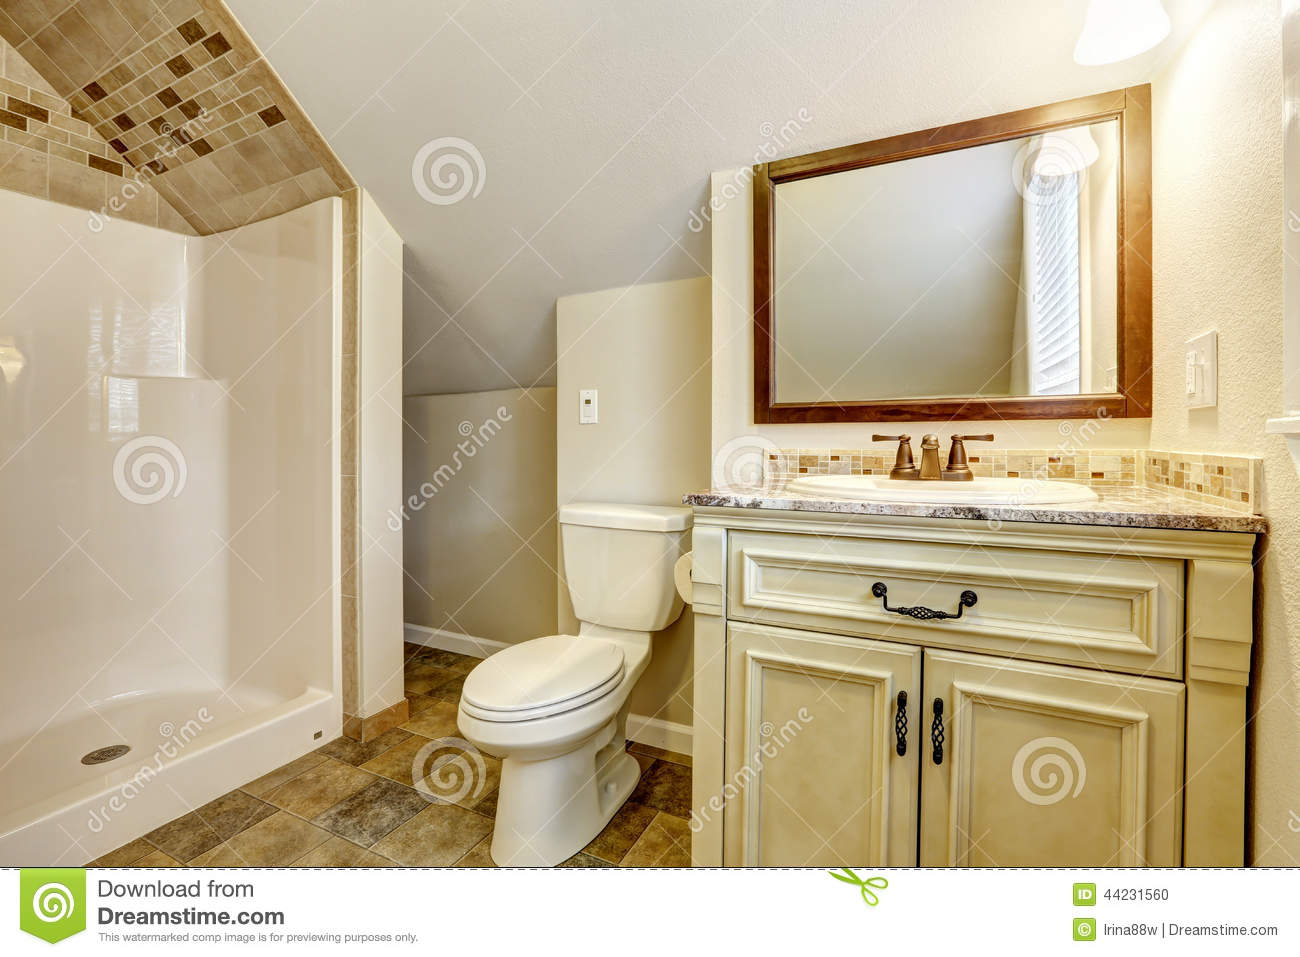 Bathroom With Vaulted Ceiling Vanity Cabinet And Mirror Stock